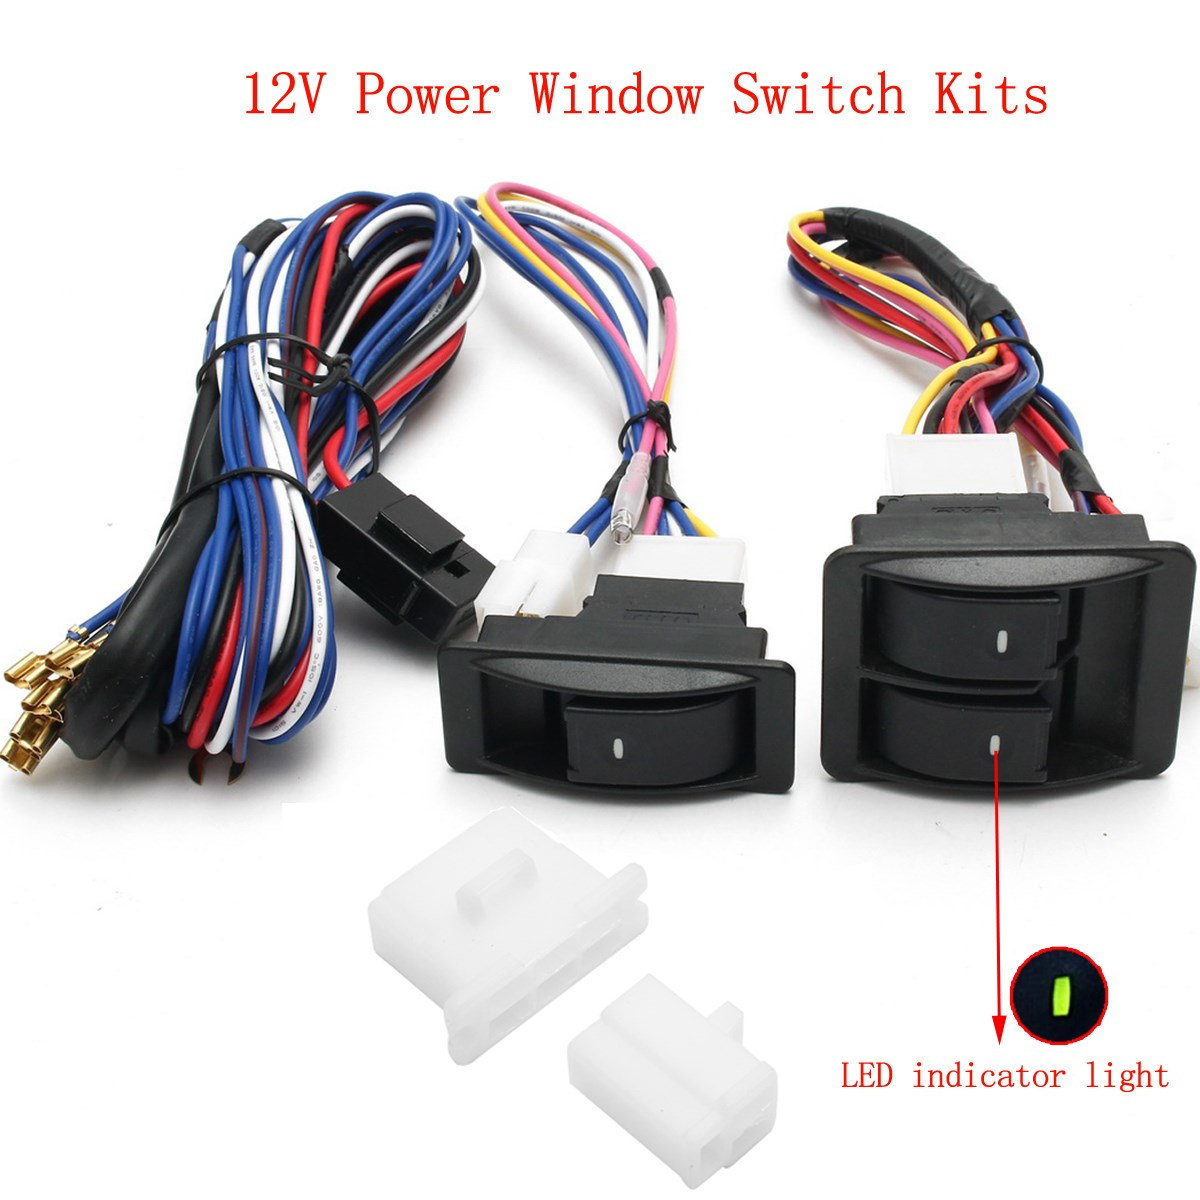 6Pcs 12V Universal Power Window Switch Kits With Installation Wiring  Harness-in Car Switches & Relays from Automobiles & Motorcycles on  Aliexpress.com ...